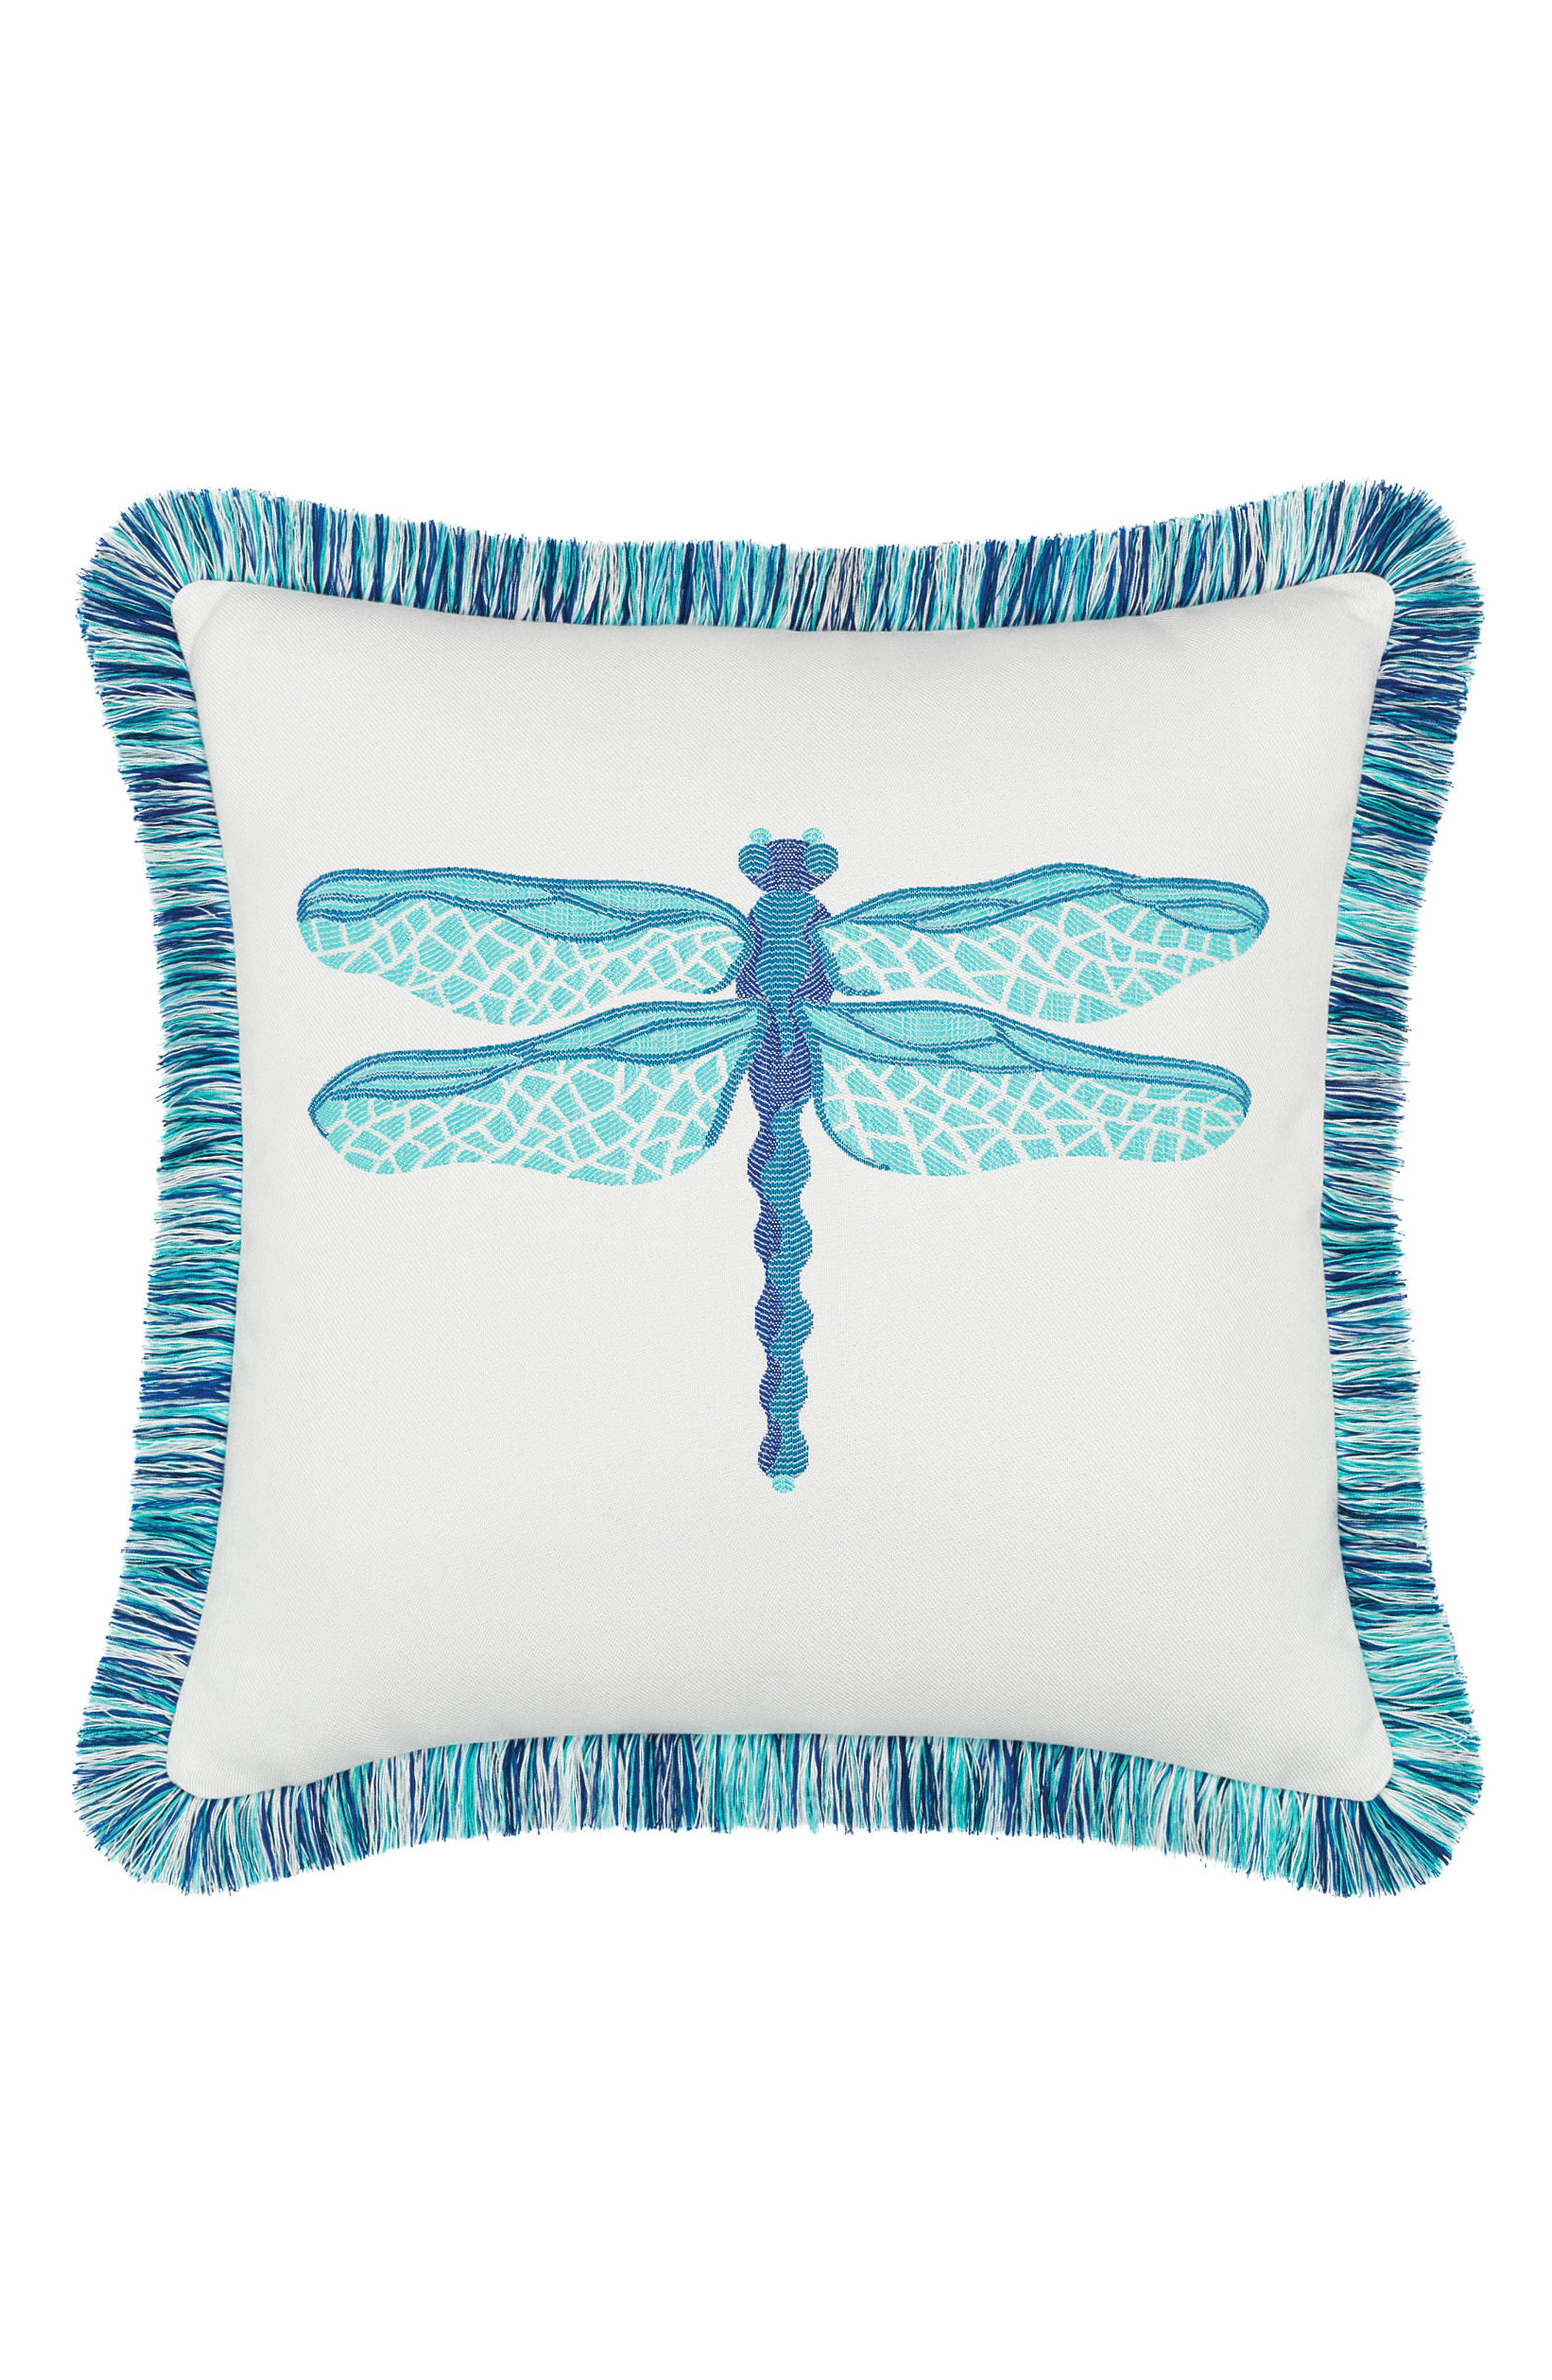 Dragonfly Indoor/Outdoor Accent Pillow,                             Main thumbnail 1, color,                             Blue/ White